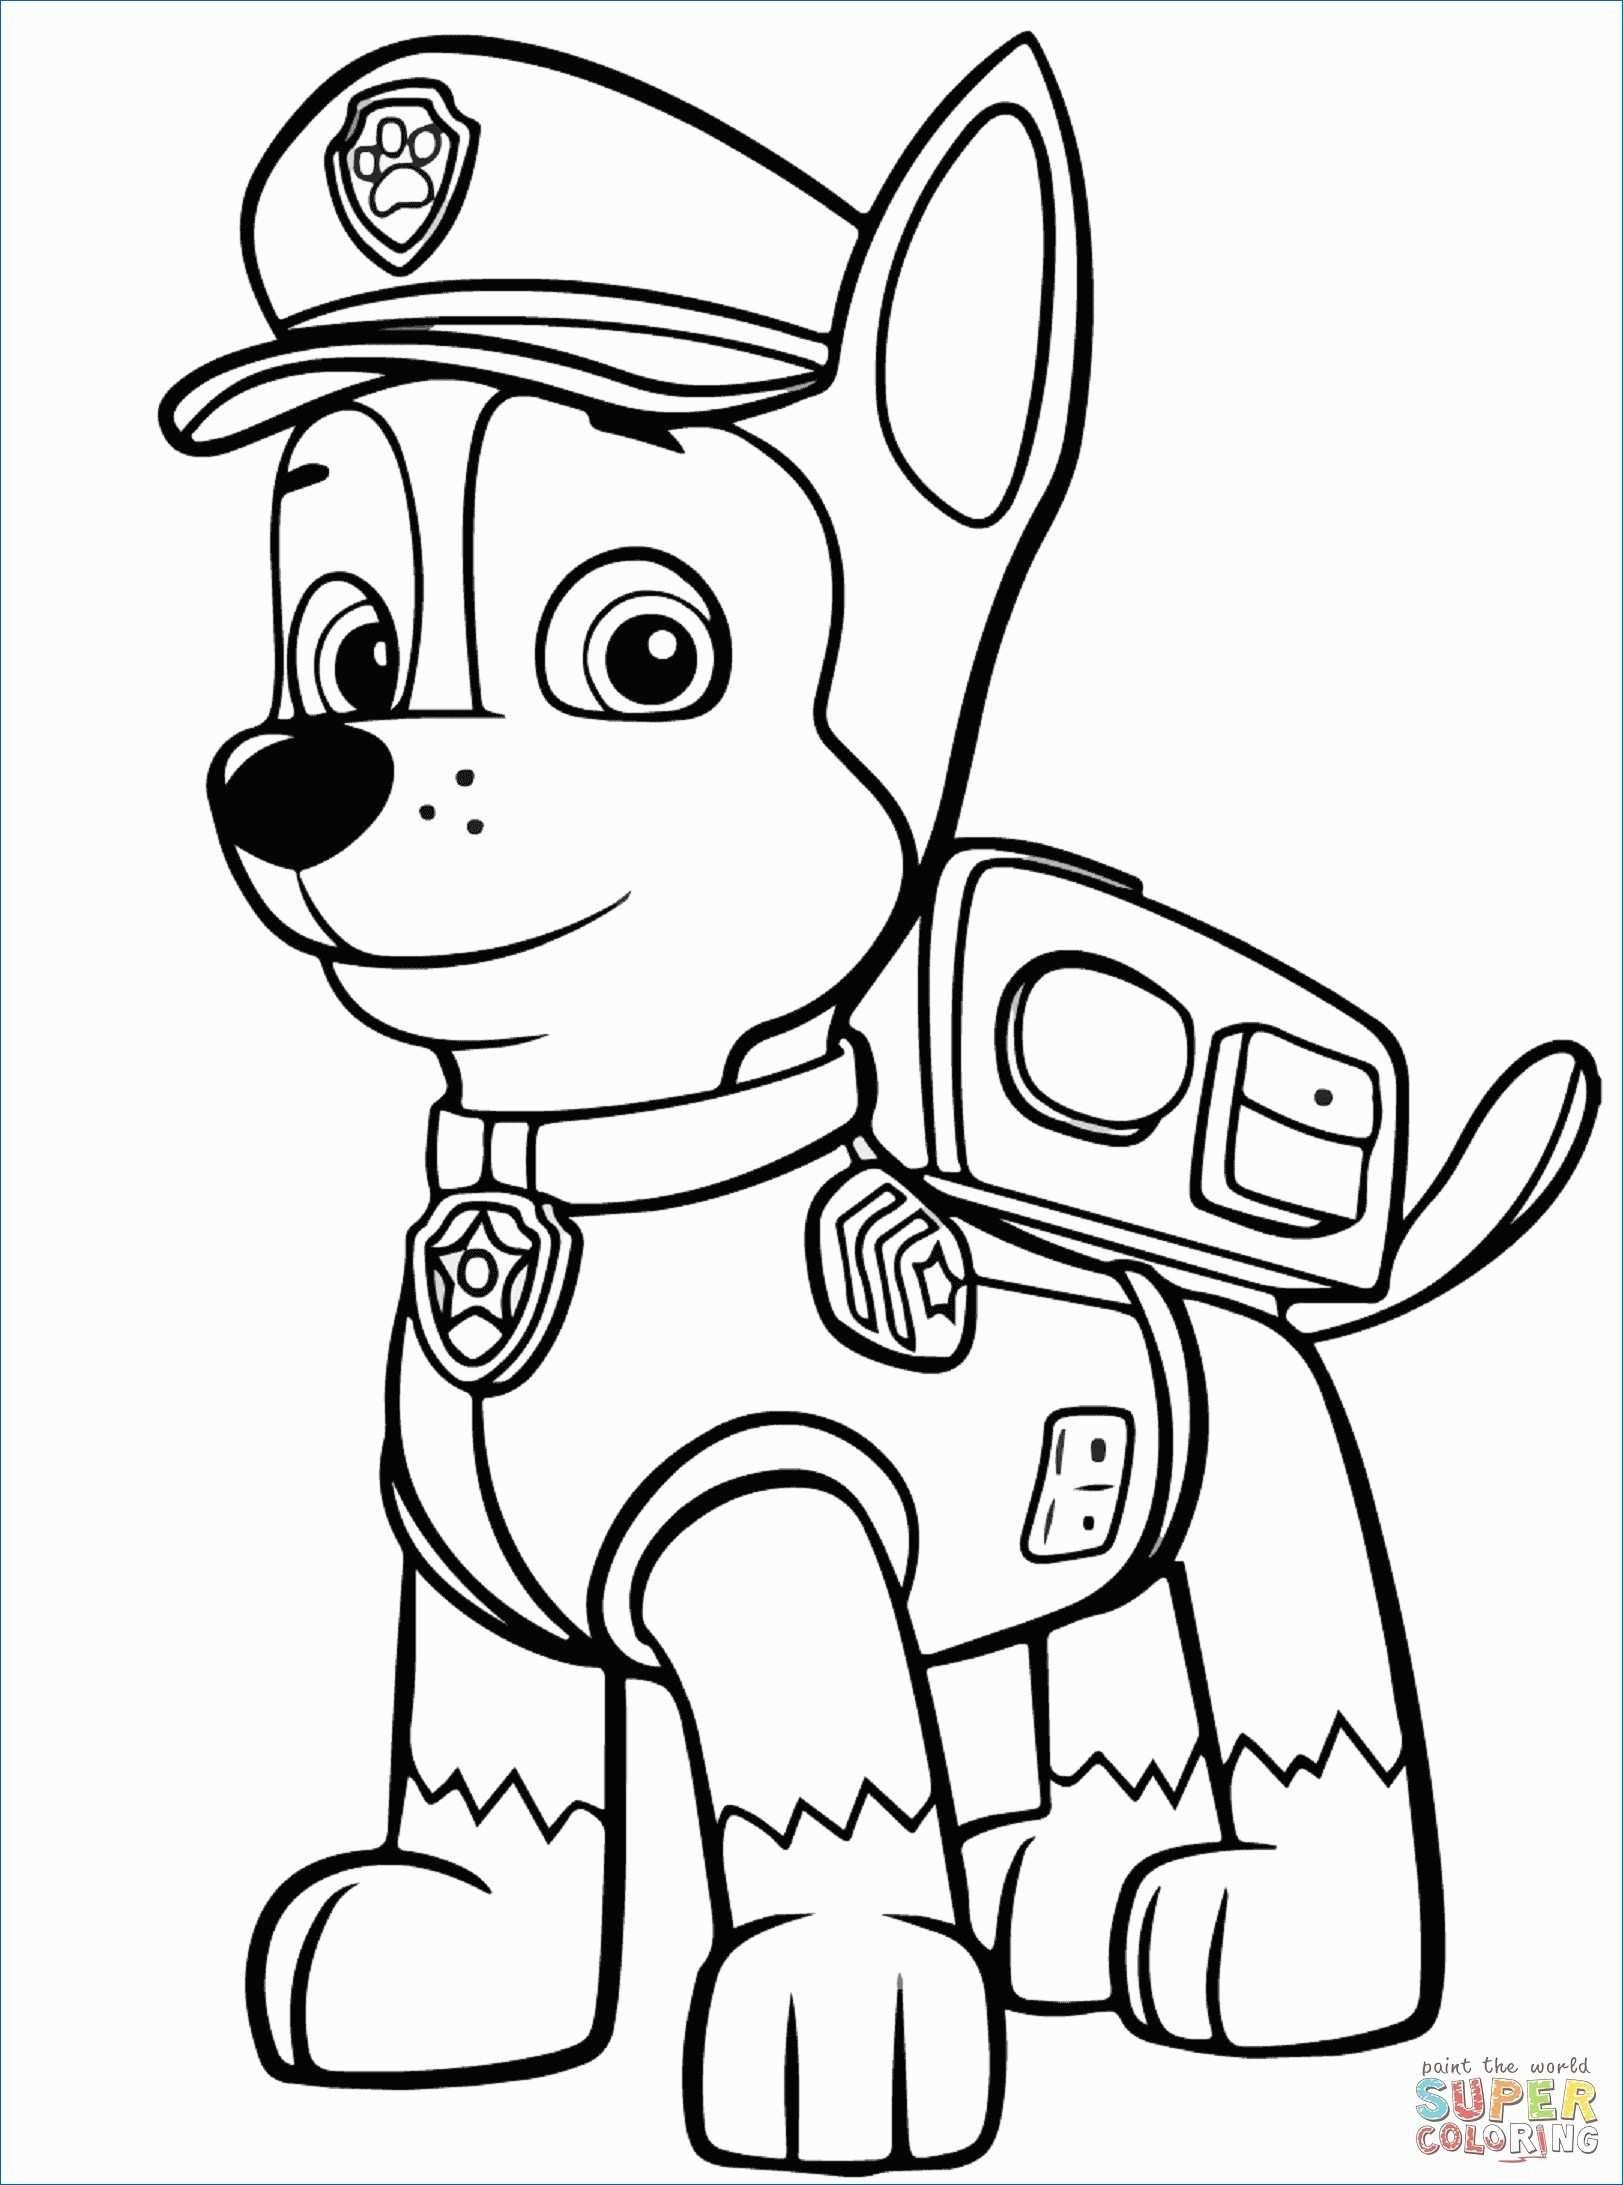 Trolls Movie Coloring Pages Unique 56 Trolls Poppy Ausmalbilder In 2020 Paw Patrol Coloring Pages Paw Patrol Coloring Paw Patrol Printables